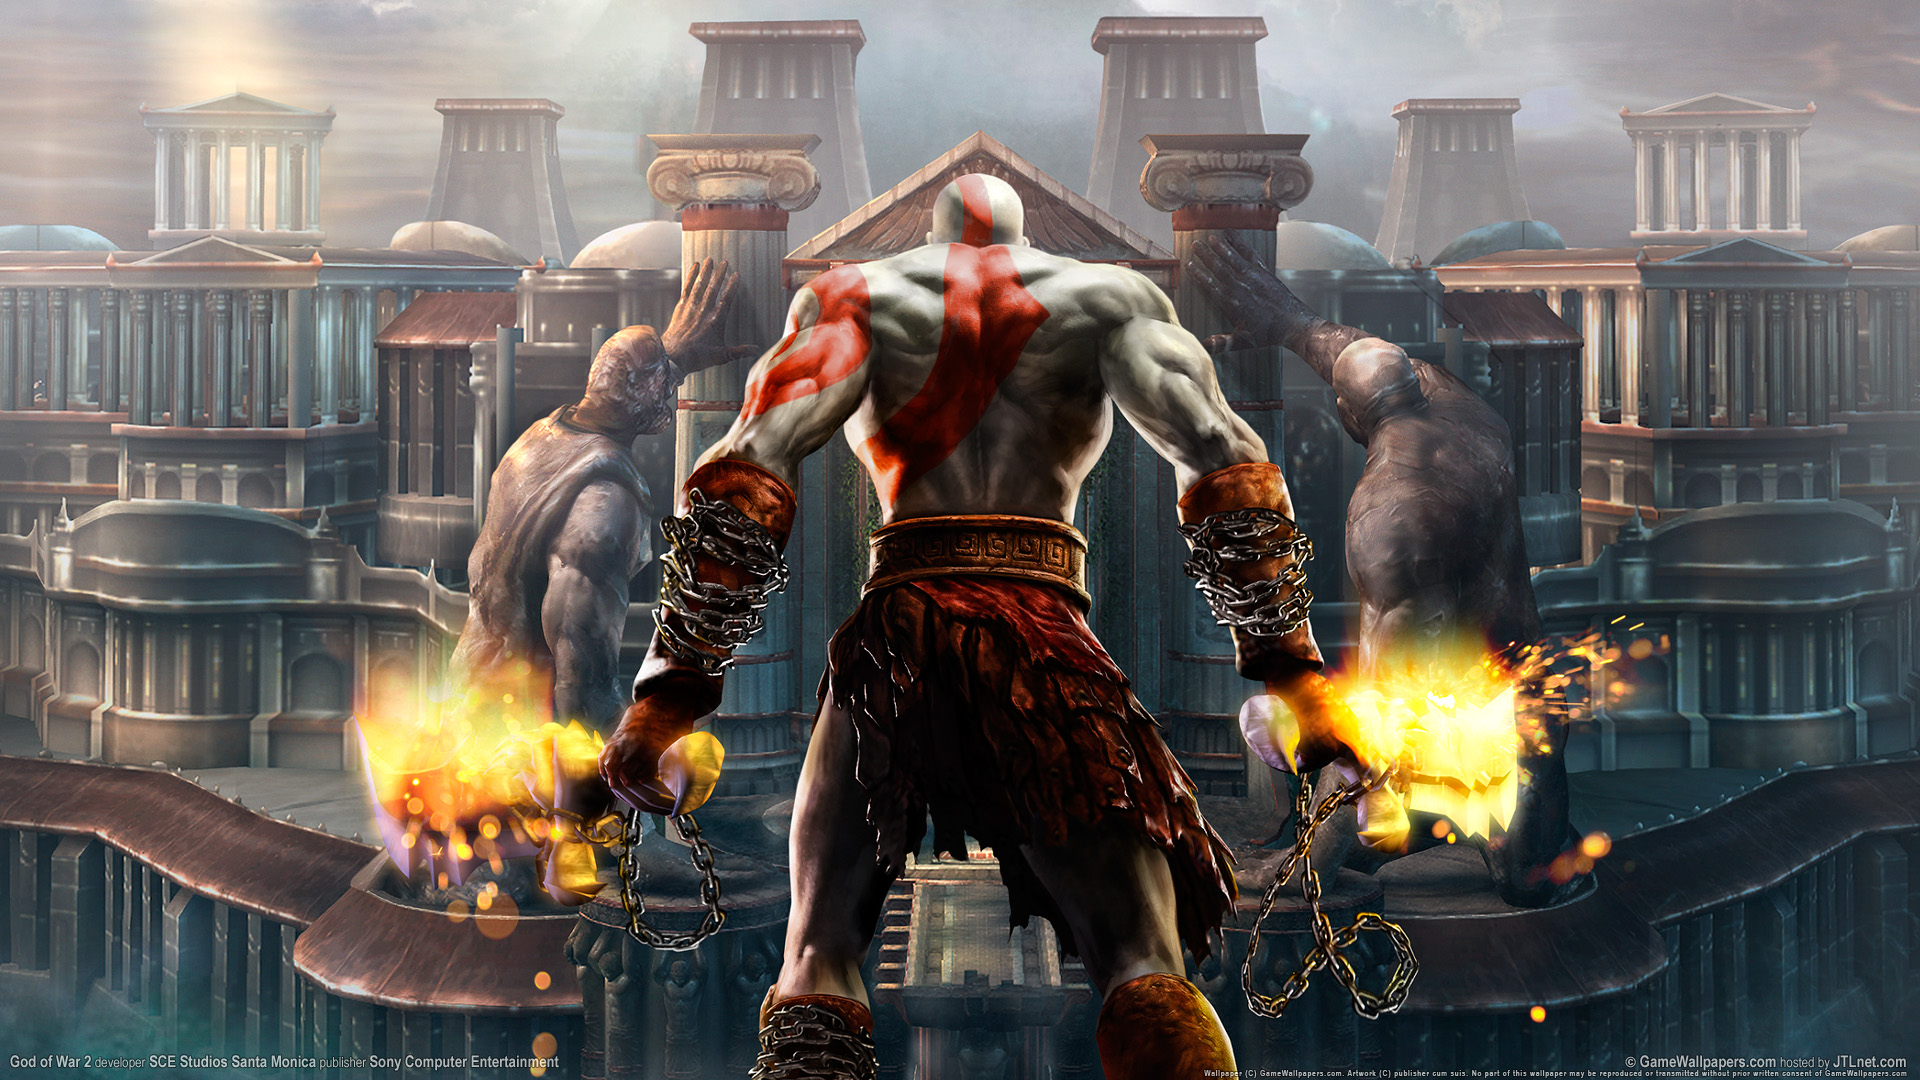 God of War 2 HD Wallpapers HD Wallpapers 1920x1080